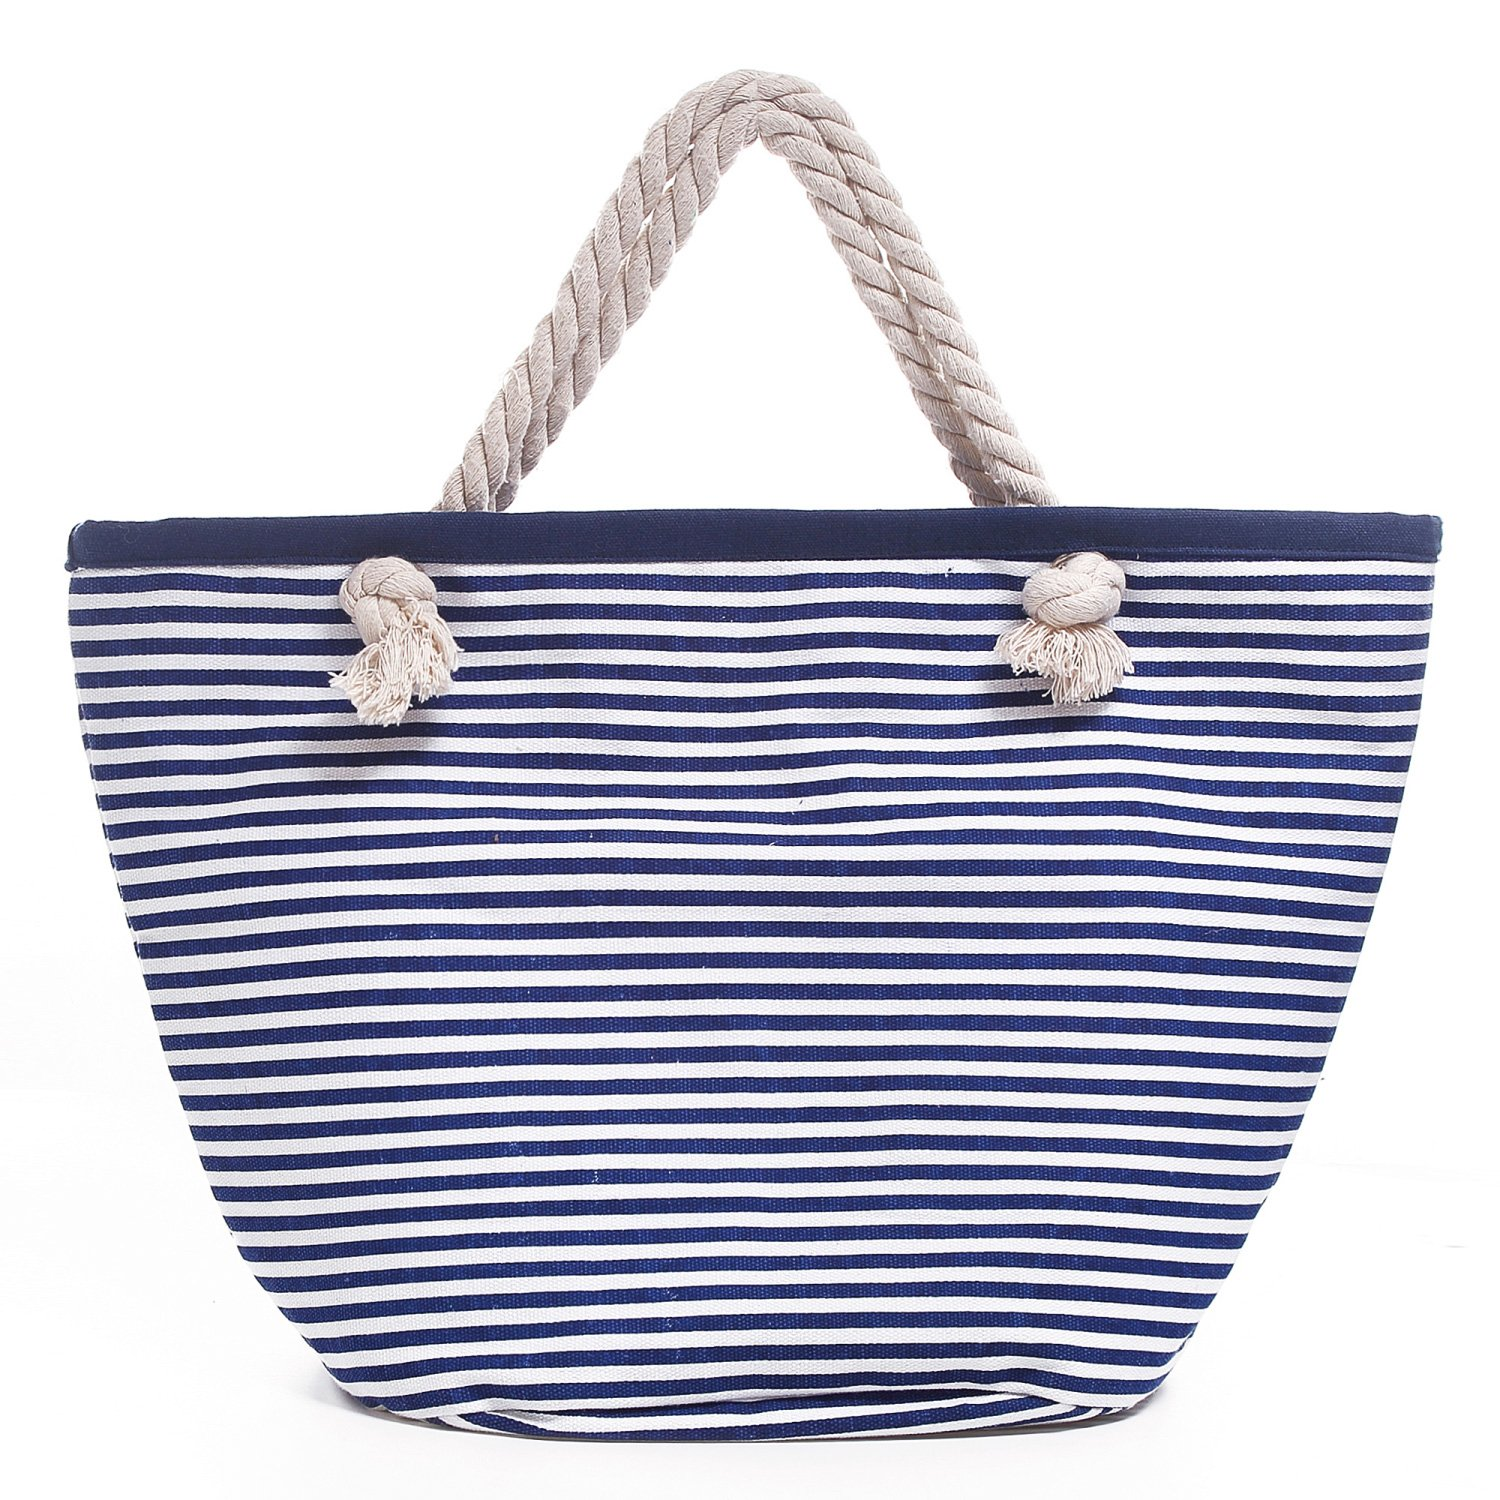 YS·AU Tote Shoulder Bag for Women,Cotton Polyester Perfect for work travel shopping